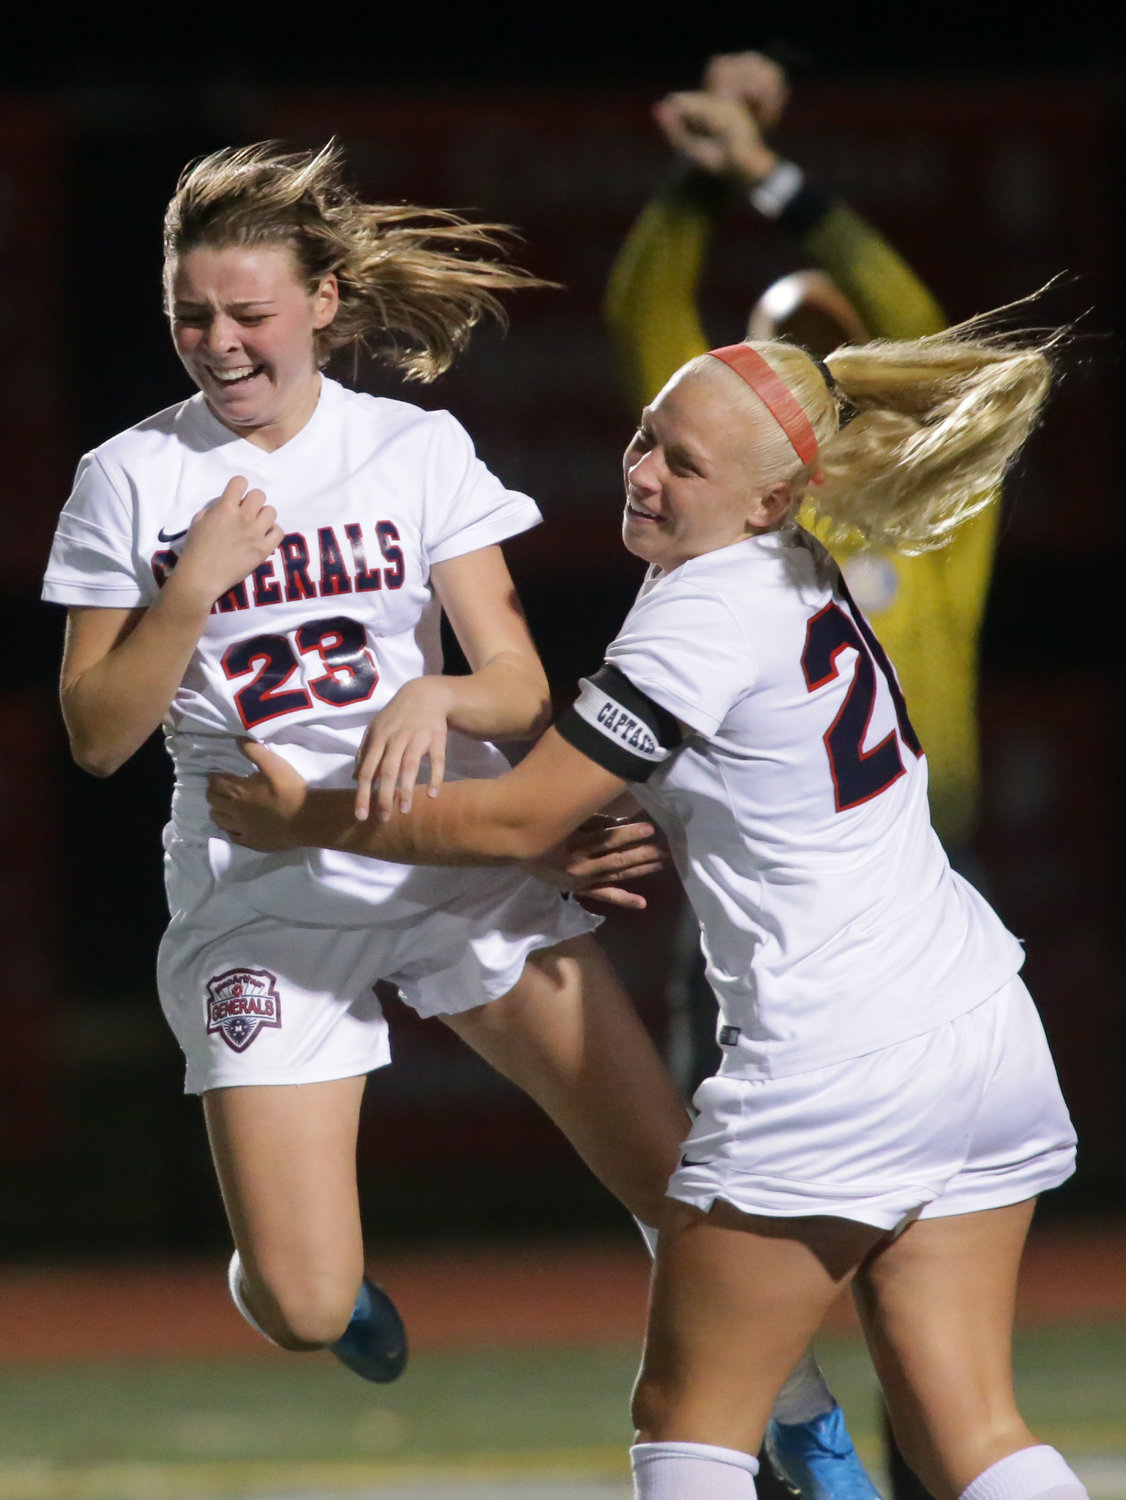 MacArthur's Hailey Hnis, left, celebrated with Alyssa Accordino after scoring the opening goal of the Lady Generals' 3-0 win over Mepham in the Nassau Class A final.